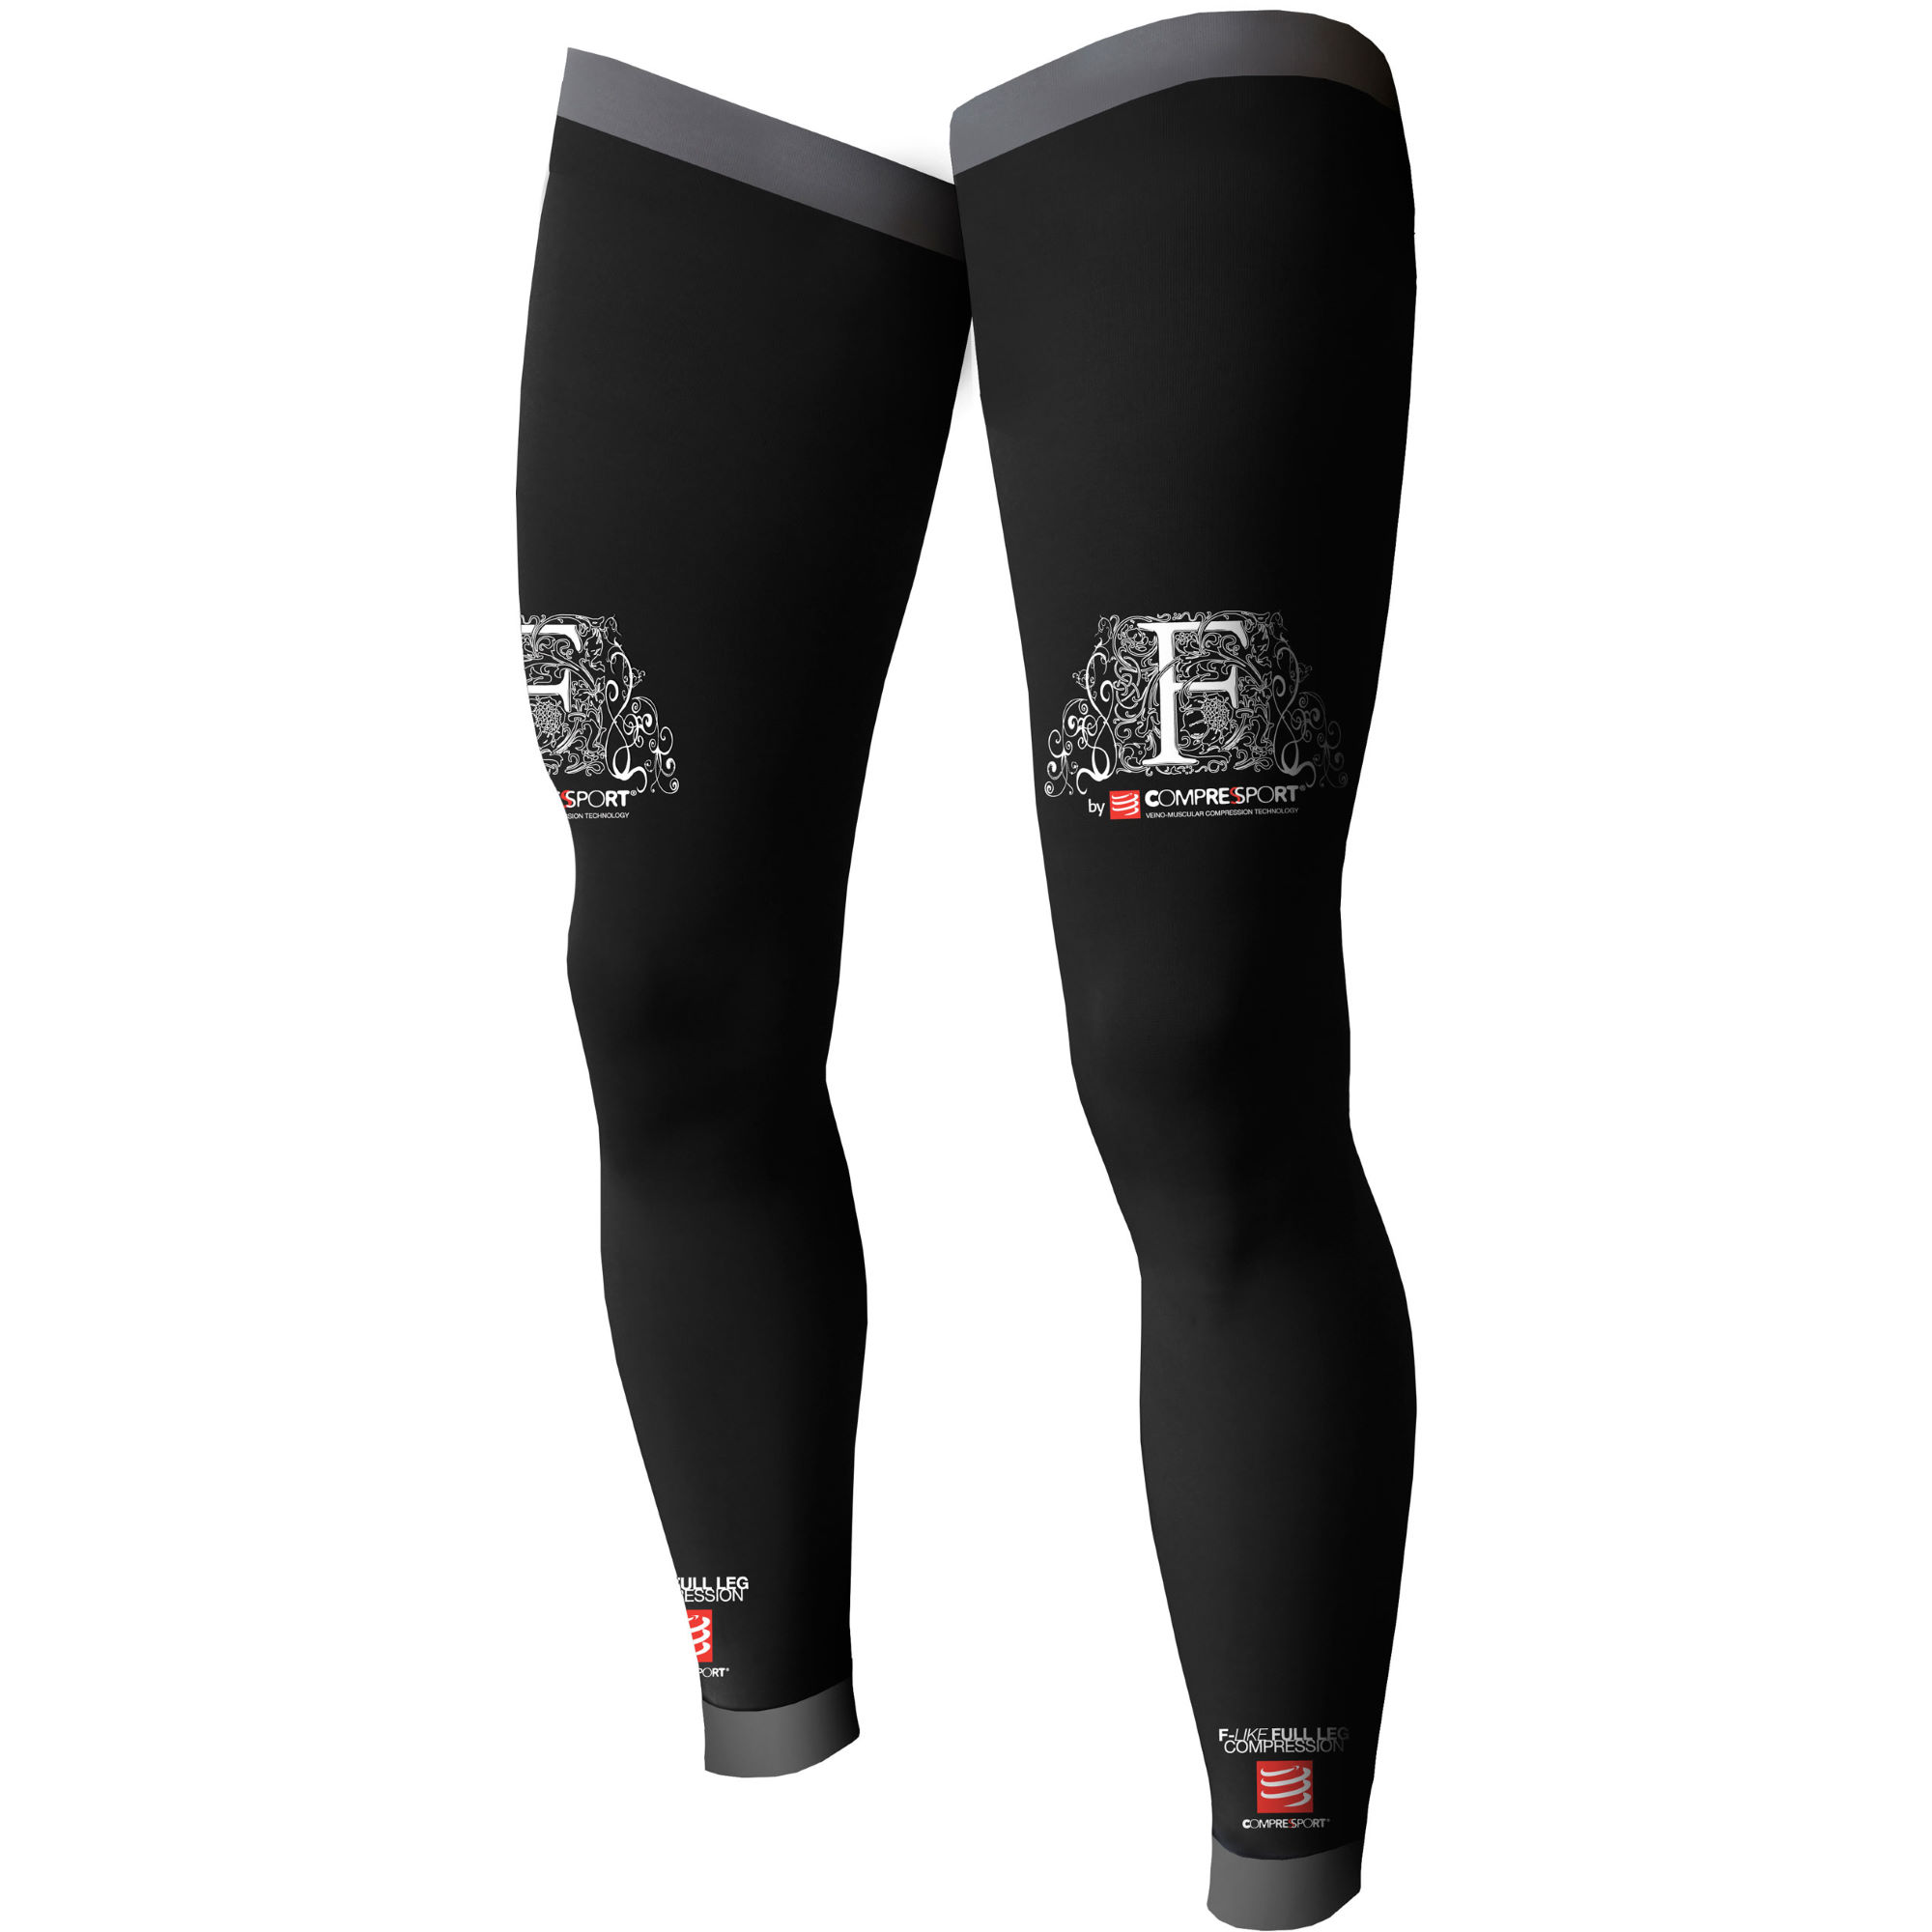 the f-like also optimises the knee position which is ideal for